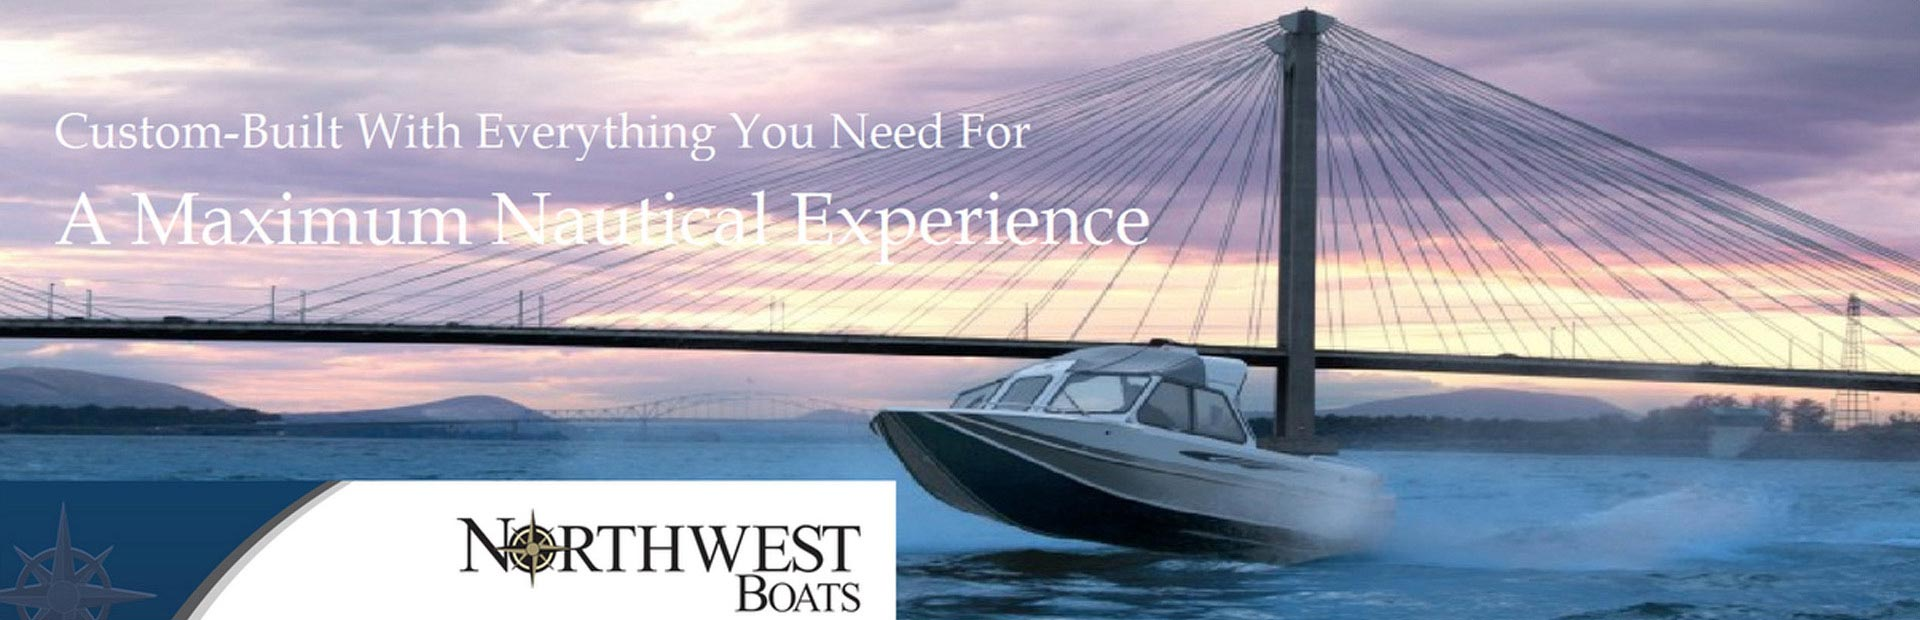 Northwest Boats. Custom-Built with everything you need for a maximum nautical experience.